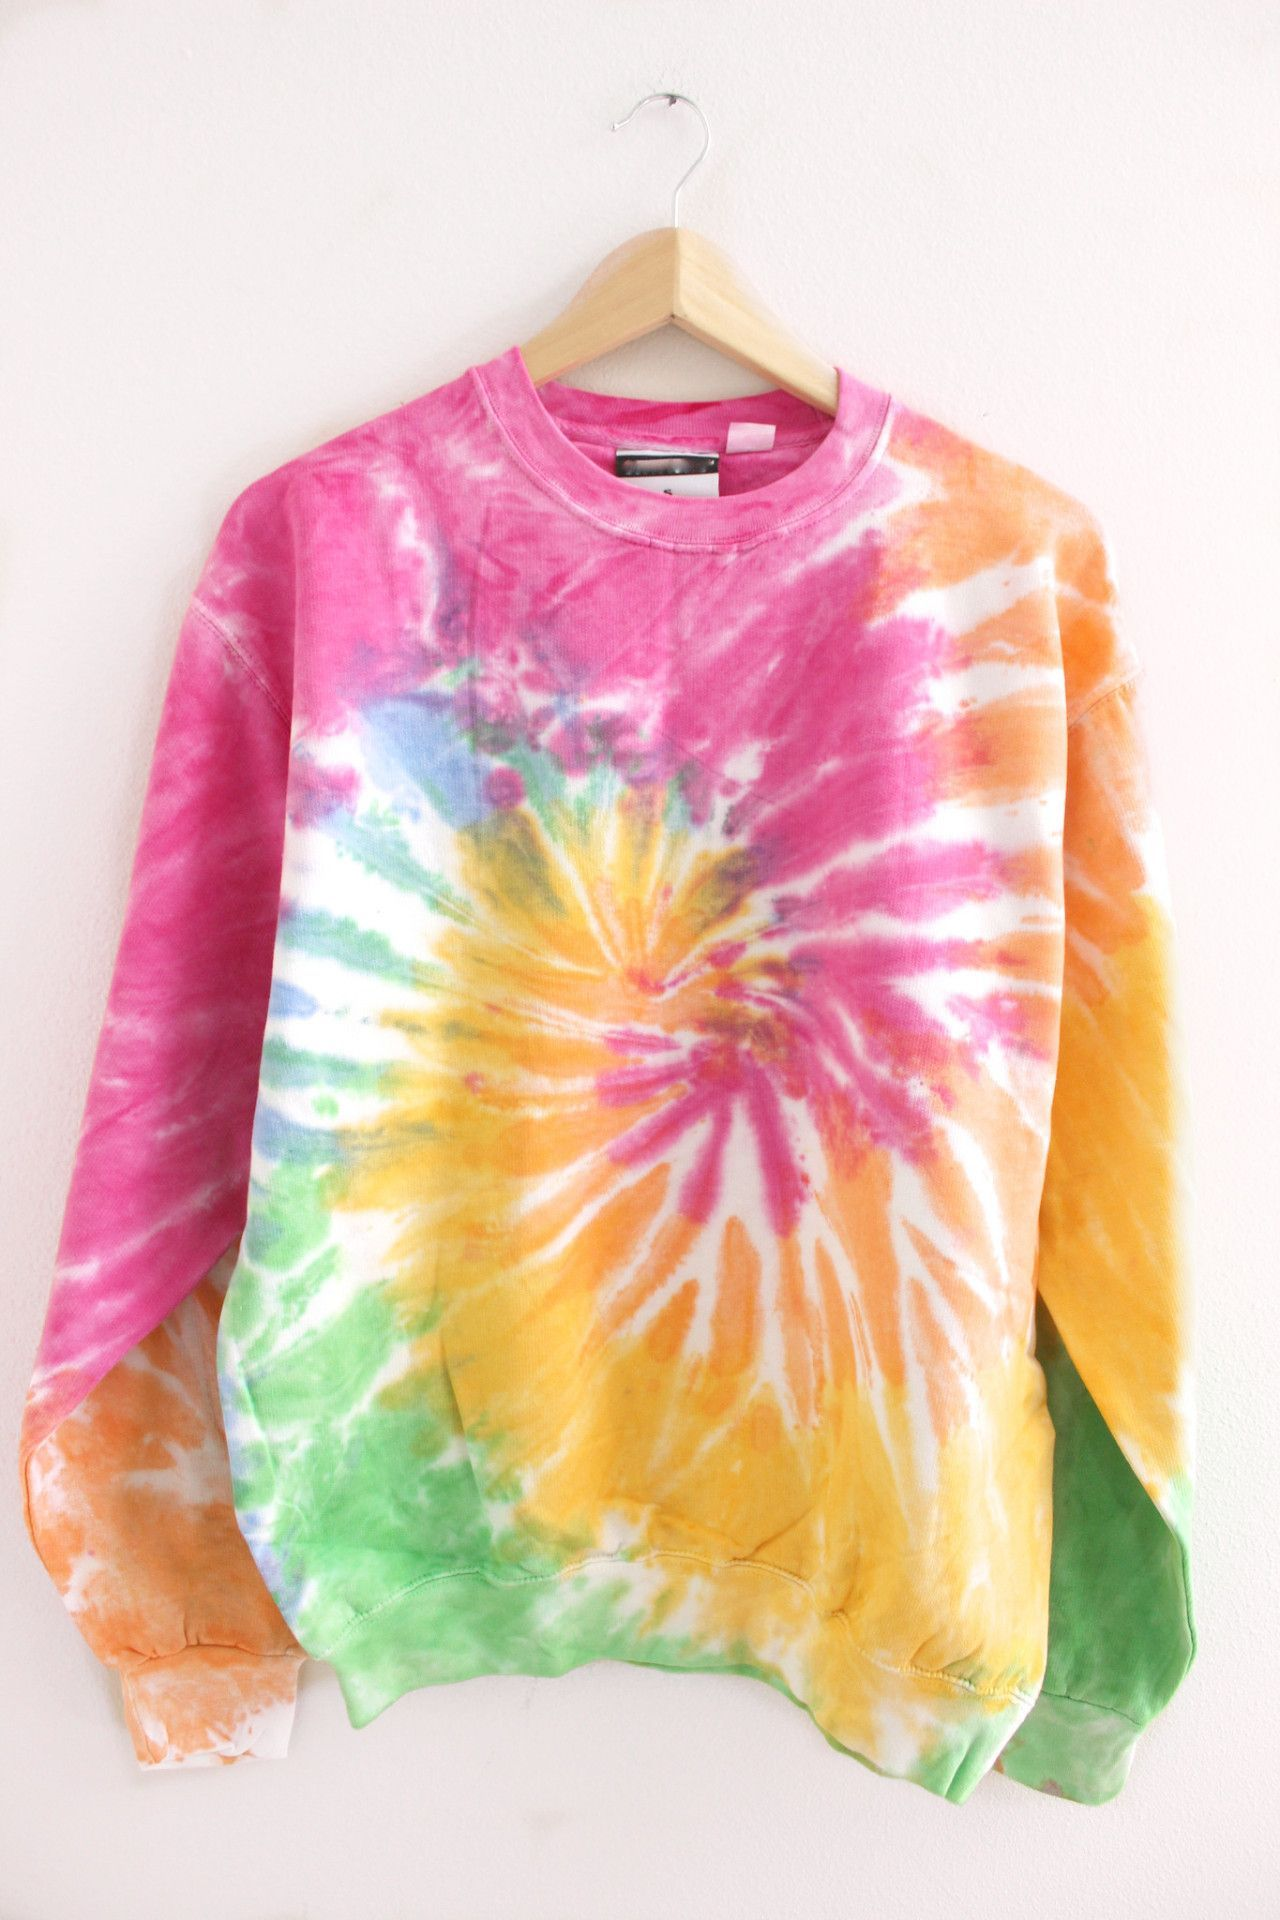 d562444c Pink, orange, yellow, blue and green, pastel rainbow tie-dye crew neck  sweatshirt. Made from 80% cotton and 20% polyester. Since each hoodie is  hand-dyed, ...